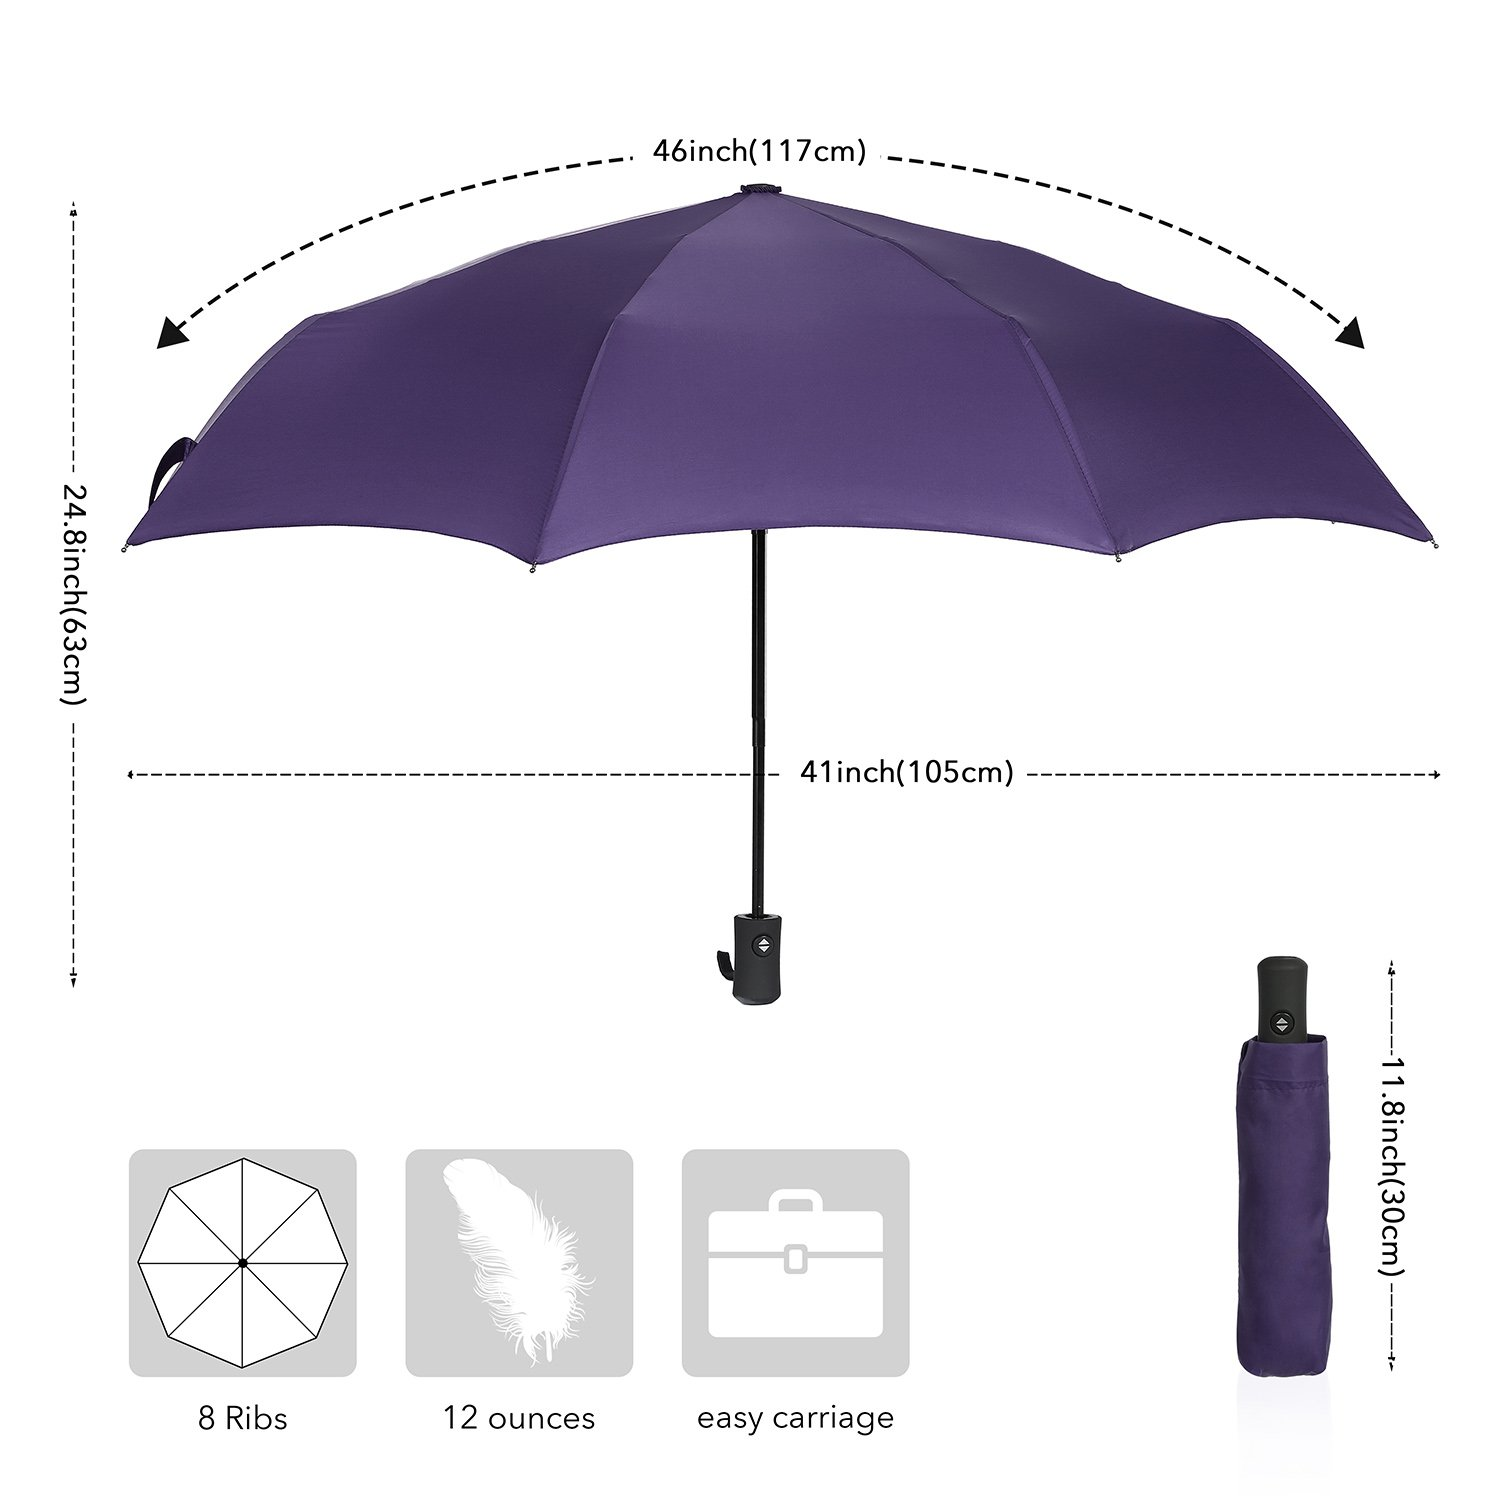 QHUMO Compact Travel Umbrella Windproof, Auto Open Close Umbrellas for Women Men by QHUMO (Image #5)